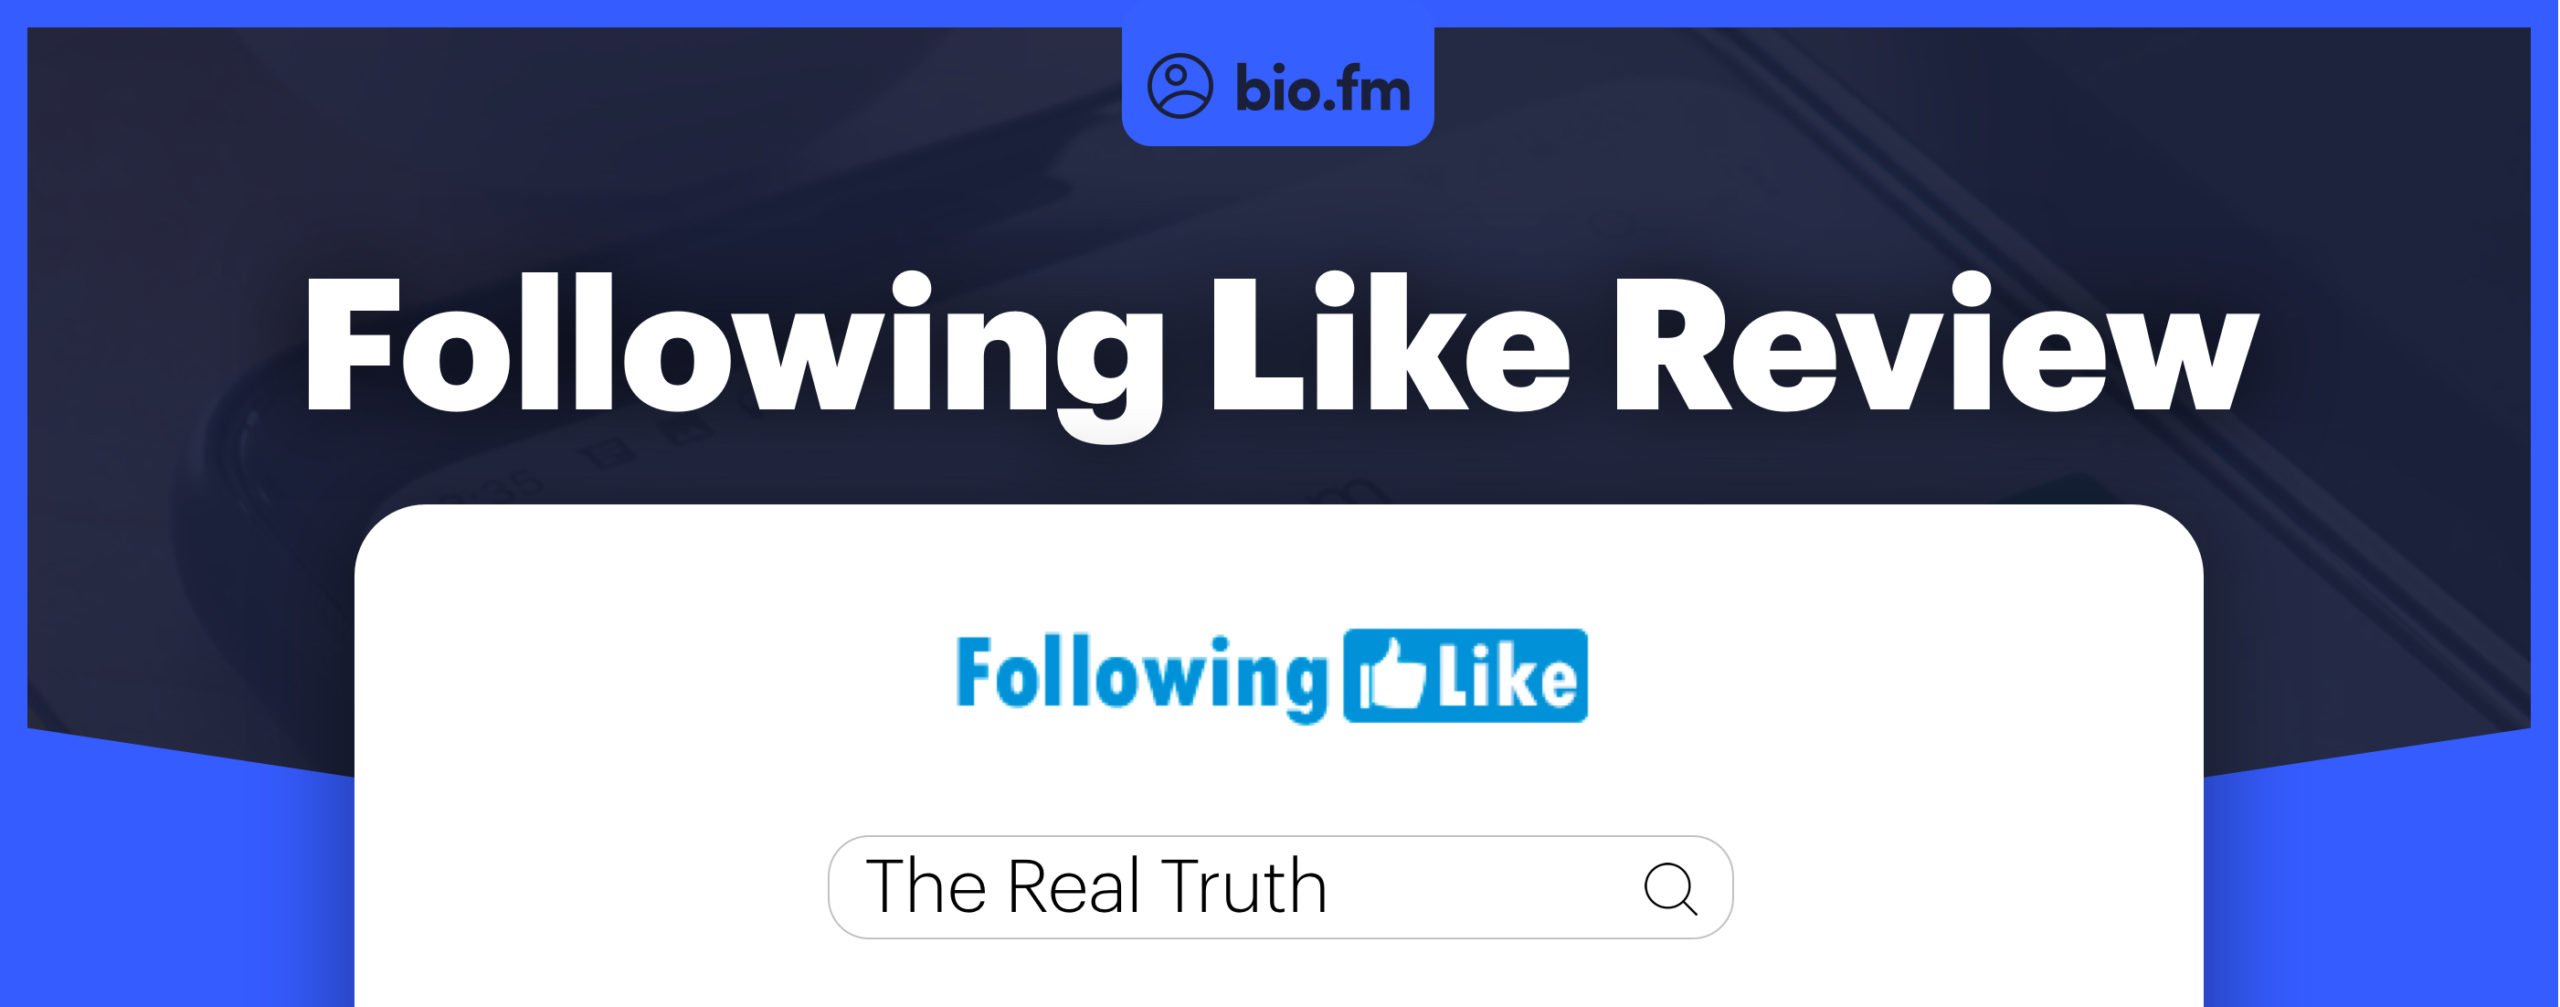 followinglike review featured image